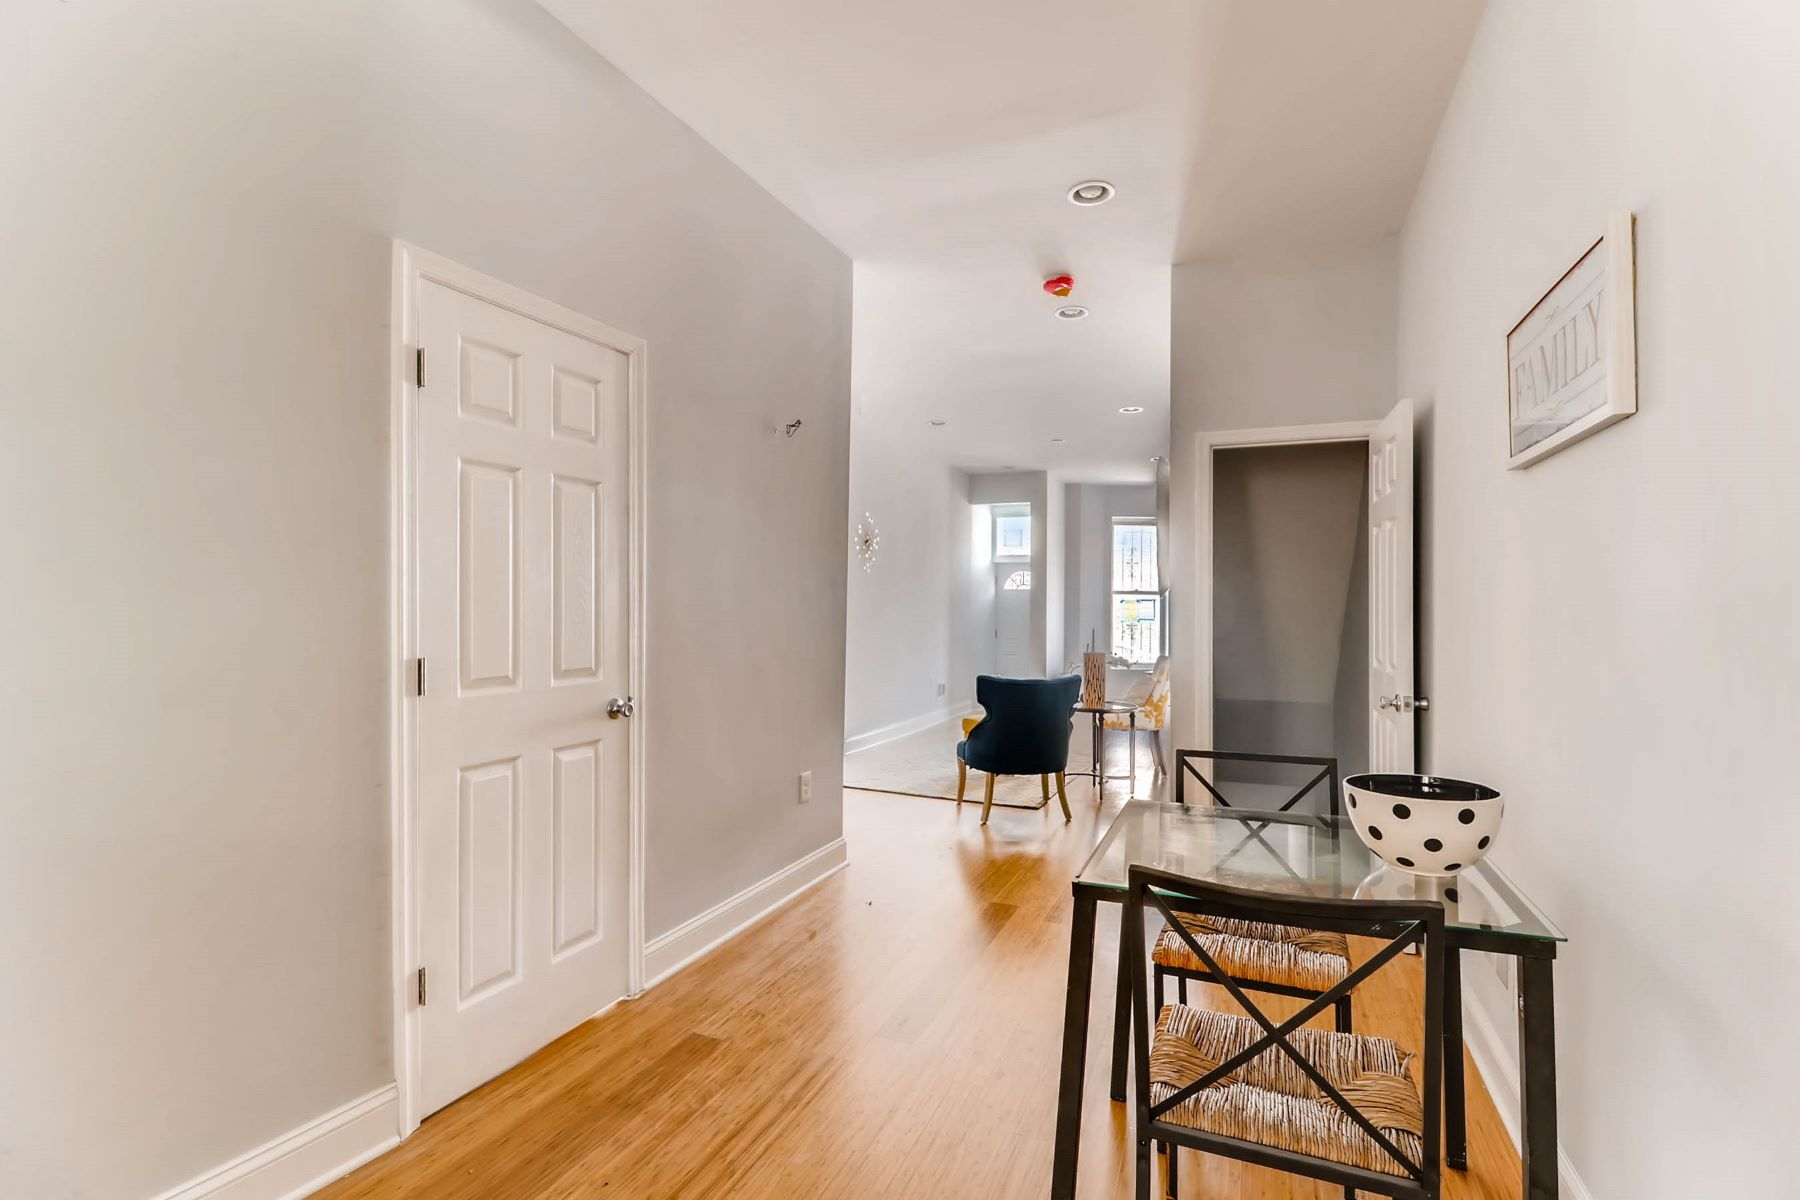 Single Family Home for Sale at 2930 Fayette Street, Baltimore, Maryland 2930 Fayette Street Baltimore, Maryland 21224 United States